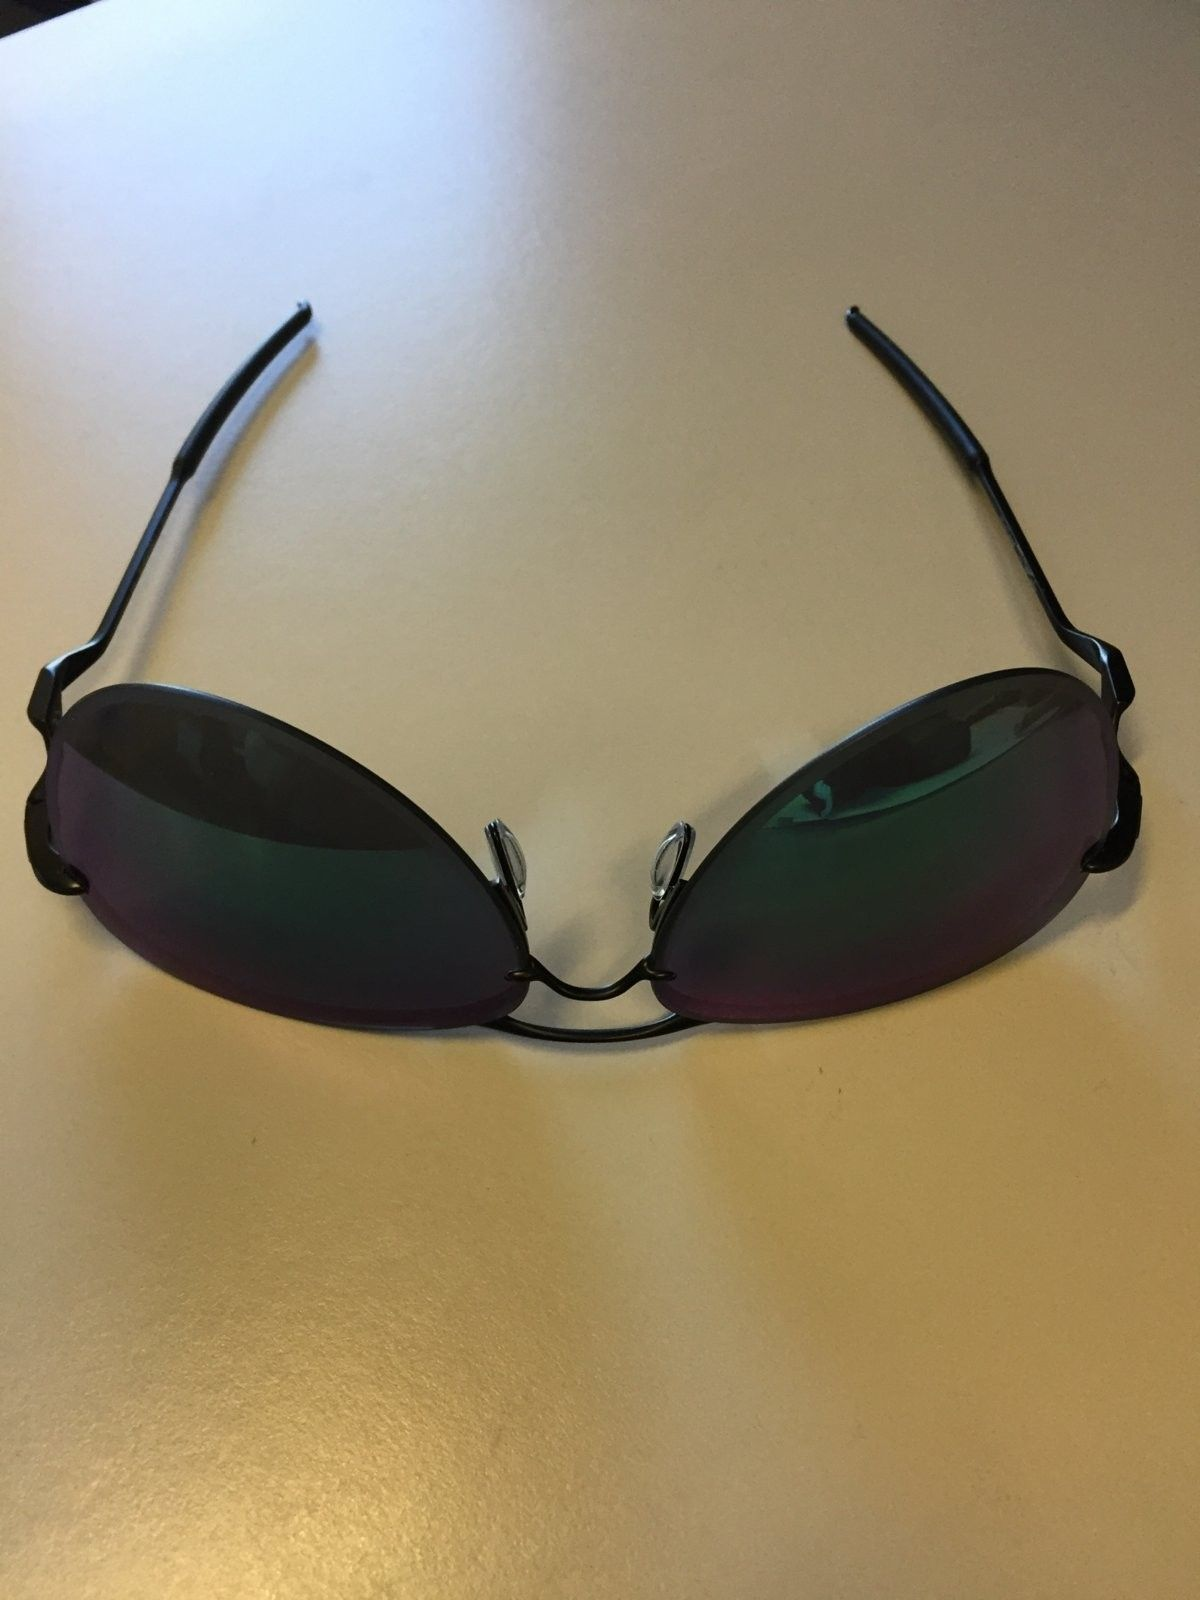 New Oakley Tailpin Jade $110 All In - IMG_1547.JPG